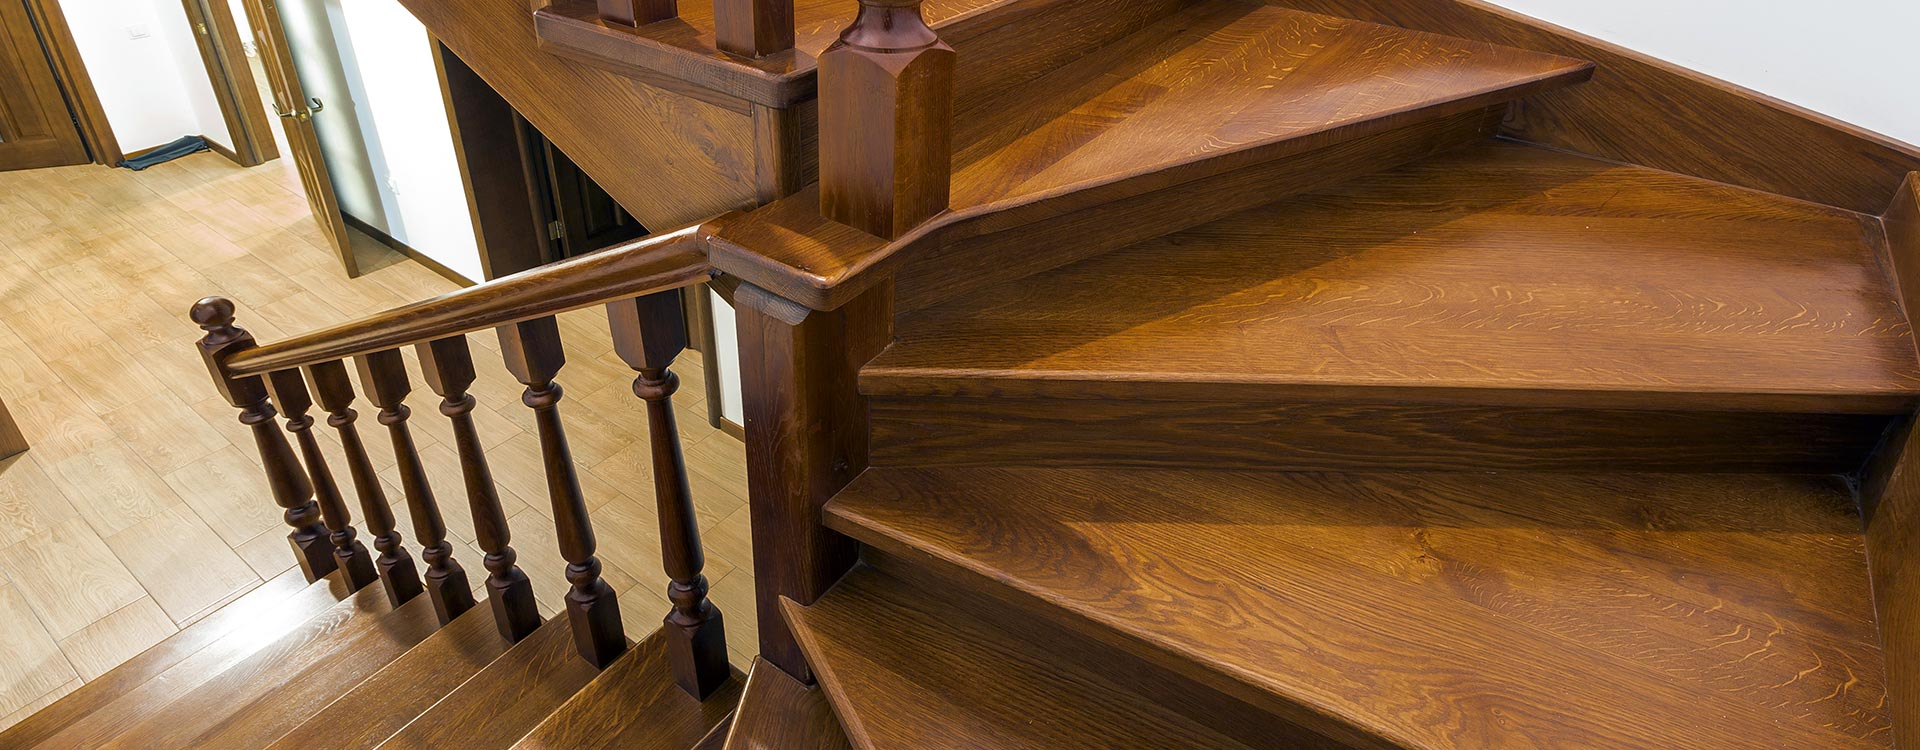 wooden-stairs